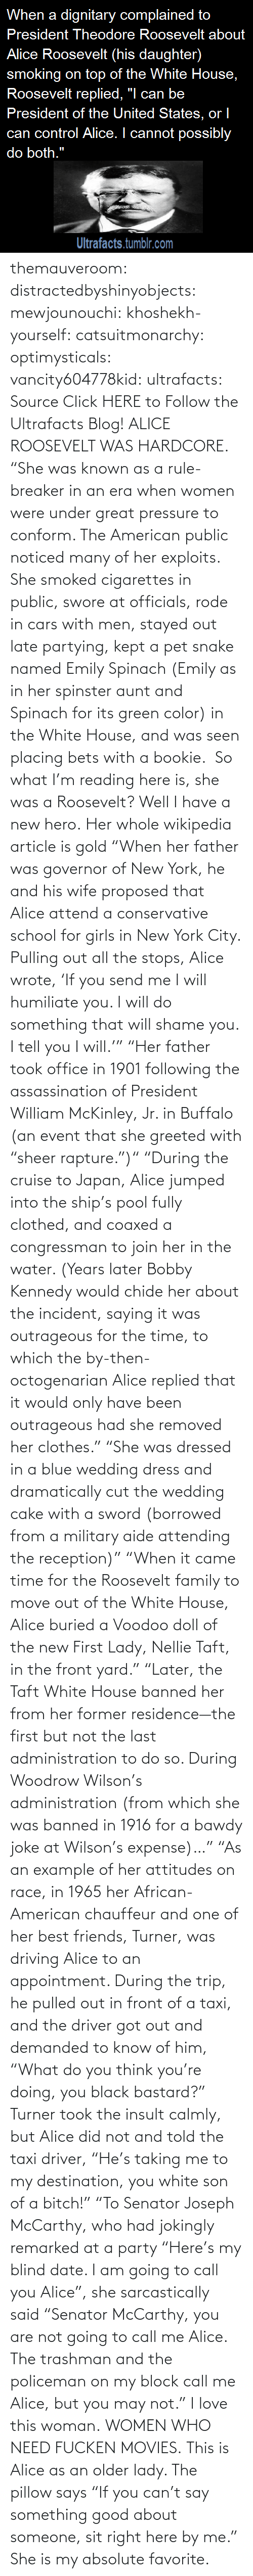 "do something: themauveroom: distractedbyshinyobjects:  mewjounouchi:  khoshekh-yourself:  catsuitmonarchy:  optimysticals:  vancity604778kid:  ultrafacts:     Source Click HERE to Follow the Ultrafacts Blog!     ALICE ROOSEVELT WAS HARDCORE. ""She was known as a rule-breaker in an era when women were under great pressure to conform. The American public noticed many of her exploits. She smoked cigarettes in public, swore at officials, rode in cars with men, stayed out late partying, kept a pet snake named Emily Spinach (Emily as in her spinster aunt and Spinach for its green color) in the White House, and was seen placing bets with a bookie.    So what I'm reading here is, she was a Roosevelt?  Well I have a new hero.  Her whole wikipedia article is gold ""When her father was governor of New York, he and his wife proposed that Alice attend a conservative school for girls in New York City. Pulling out all the stops, Alice wrote, 'If you send me I will humiliate you. I will do something that will shame you. I tell you I will.'"" ""Her father took office in 1901 following the assassination of President William McKinley, Jr. in Buffalo (an event that she greeted with ""sheer rapture."")"" ""During the cruise to Japan, Alice jumped into the ship's pool fully clothed, and coaxed a congressman to join her in the water. (Years later Bobby Kennedy would chide her about the incident, saying it was outrageous for the time, to which the by-then-octogenarian Alice replied that it would only have been outrageous had she removed her clothes."" ""She was dressed in a blue wedding dress and dramatically cut the wedding cake with a sword (borrowed from a military aide attending the reception)"" ""When it came time for the Roosevelt family to move out of the White House, Alice buried a Voodoo doll of the new First Lady, Nellie Taft, in the front yard."" ""Later, the Taft White House banned her from her former residence—the first but not the last administration to do so. During Woodrow Wilson's administration (from which she was banned in 1916 for a bawdy joke at Wilson's expense)…"" ""As an example of her attitudes on race, in 1965 her African-American chauffeur and one of her best friends, Turner, was driving Alice to an appointment. During the trip, he pulled out in front of a taxi, and the driver got out and demanded to know of him, ""What do you think you're doing, you black bastard?"" Turner took the insult calmly, but Alice did not and told the taxi driver, ""He's taking me to my destination, you white son of a bitch!"" ""To Senator Joseph McCarthy, who had jokingly remarked at a party ""Here's my blind date. I am going to call you Alice"", she sarcastically said ""Senator McCarthy, you are not going to call me Alice. The trashman and the policeman on my block call me Alice, but you may not.""  I love this woman.  WOMEN WHO NEED FUCKEN MOVIES.   This is Alice as an older lady. The pillow says ""If you can't say something good about someone, sit right here by me.""  She is my absolute favorite."